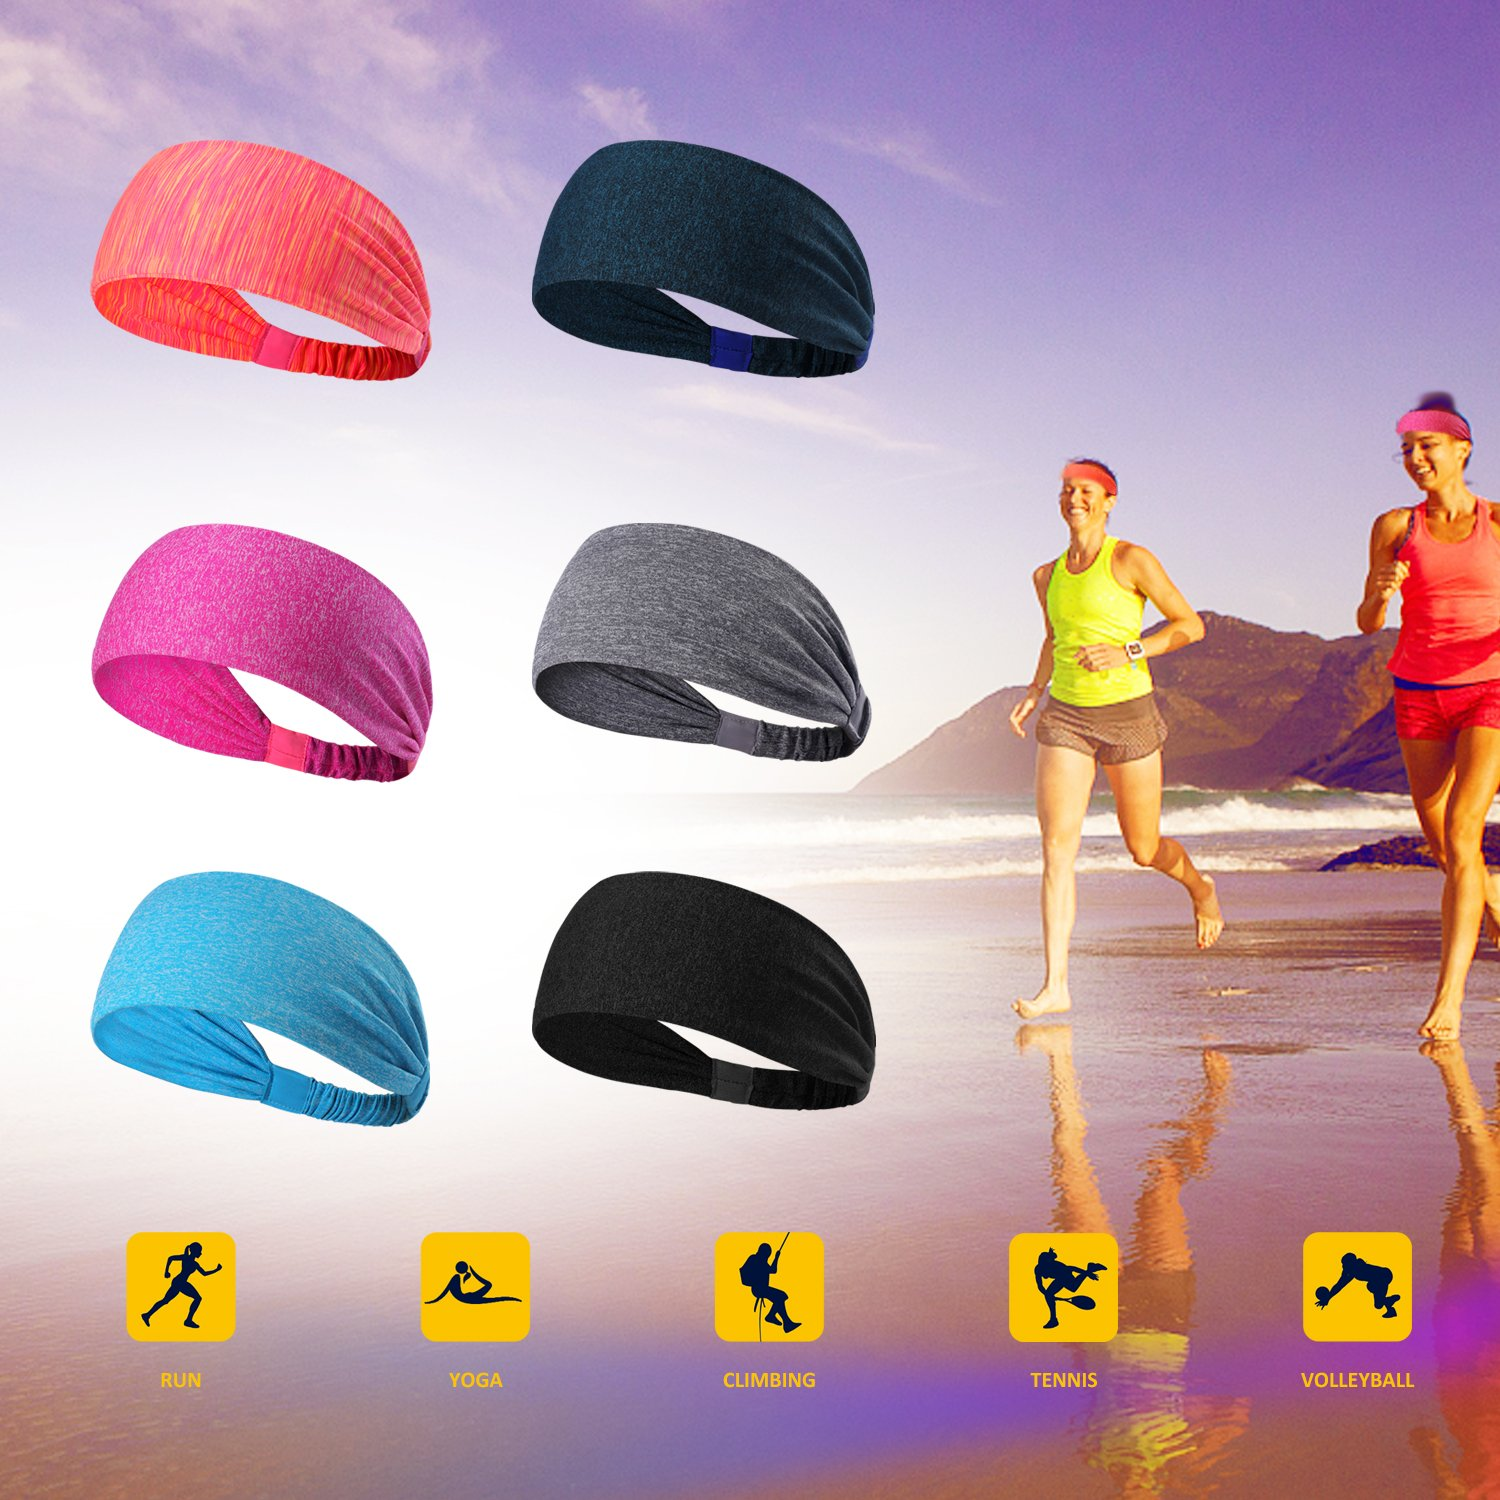 6 Pieces Sport Headband Yoga/Cycling/Running /Fitness ExerciseHairband Elastic Sweatband for Unisex by Leoter (Image #5)